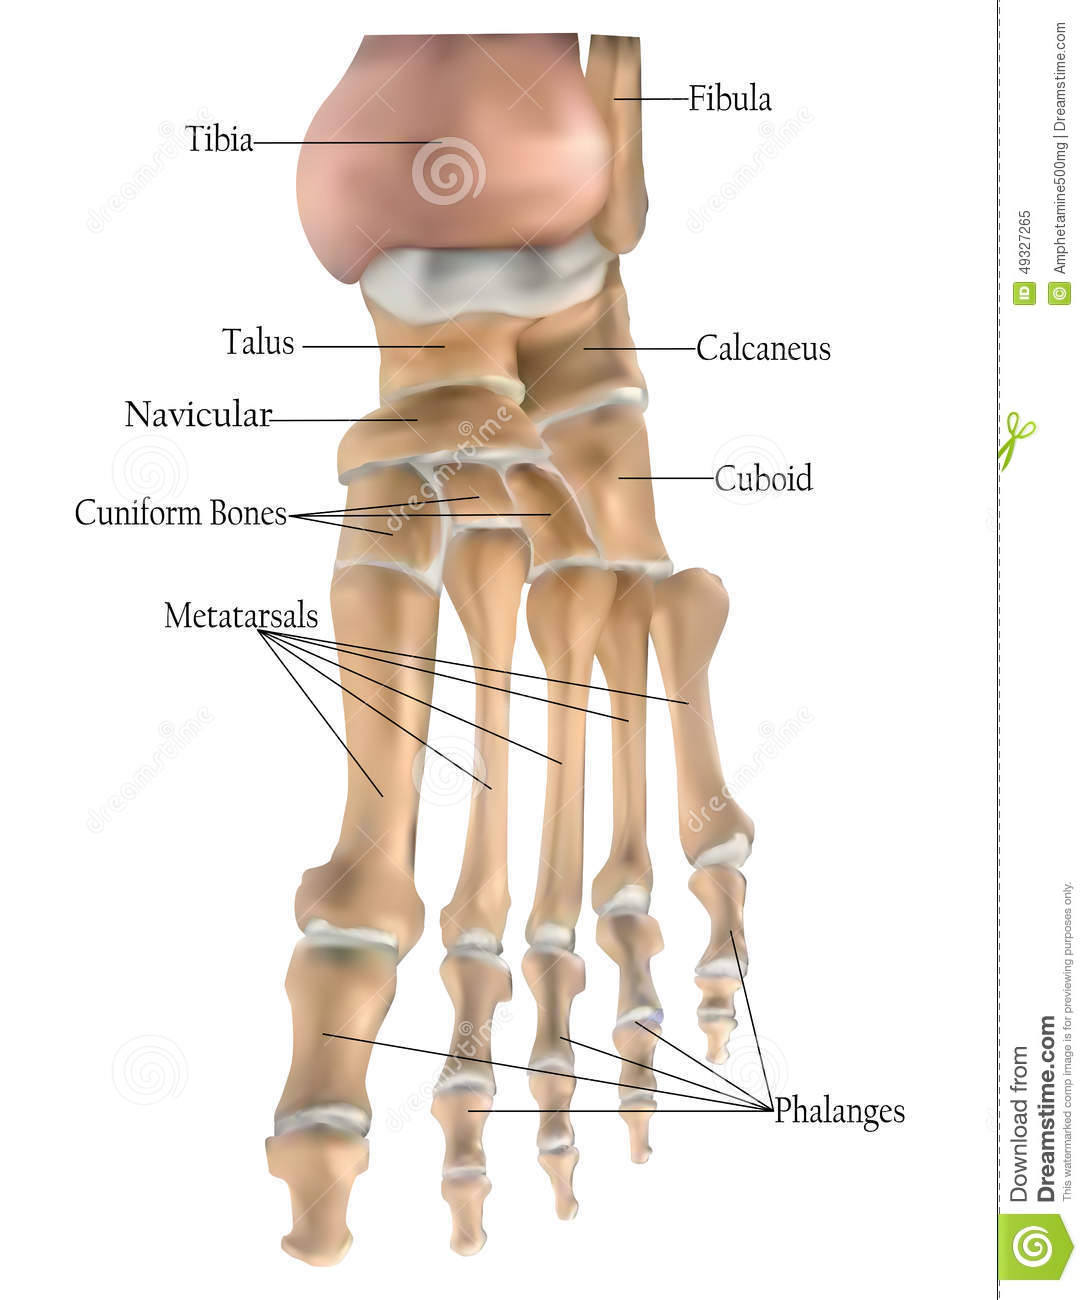 Anatomy Of The Foot Bones Stock Illustration Illustration Of Bone